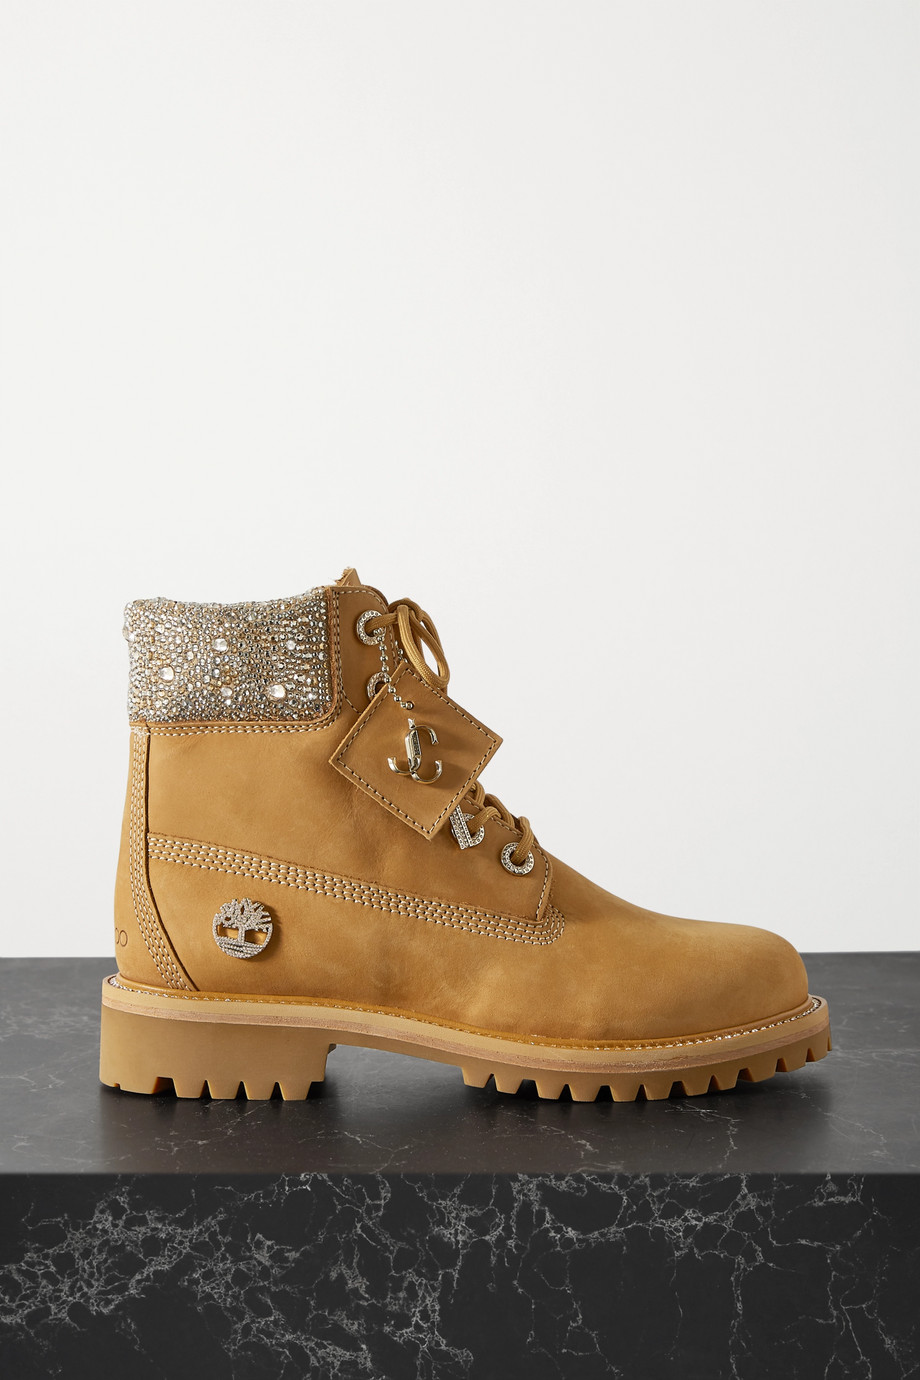 Jimmy Choo + Timberland crystal-embellished nubuck ankle boots